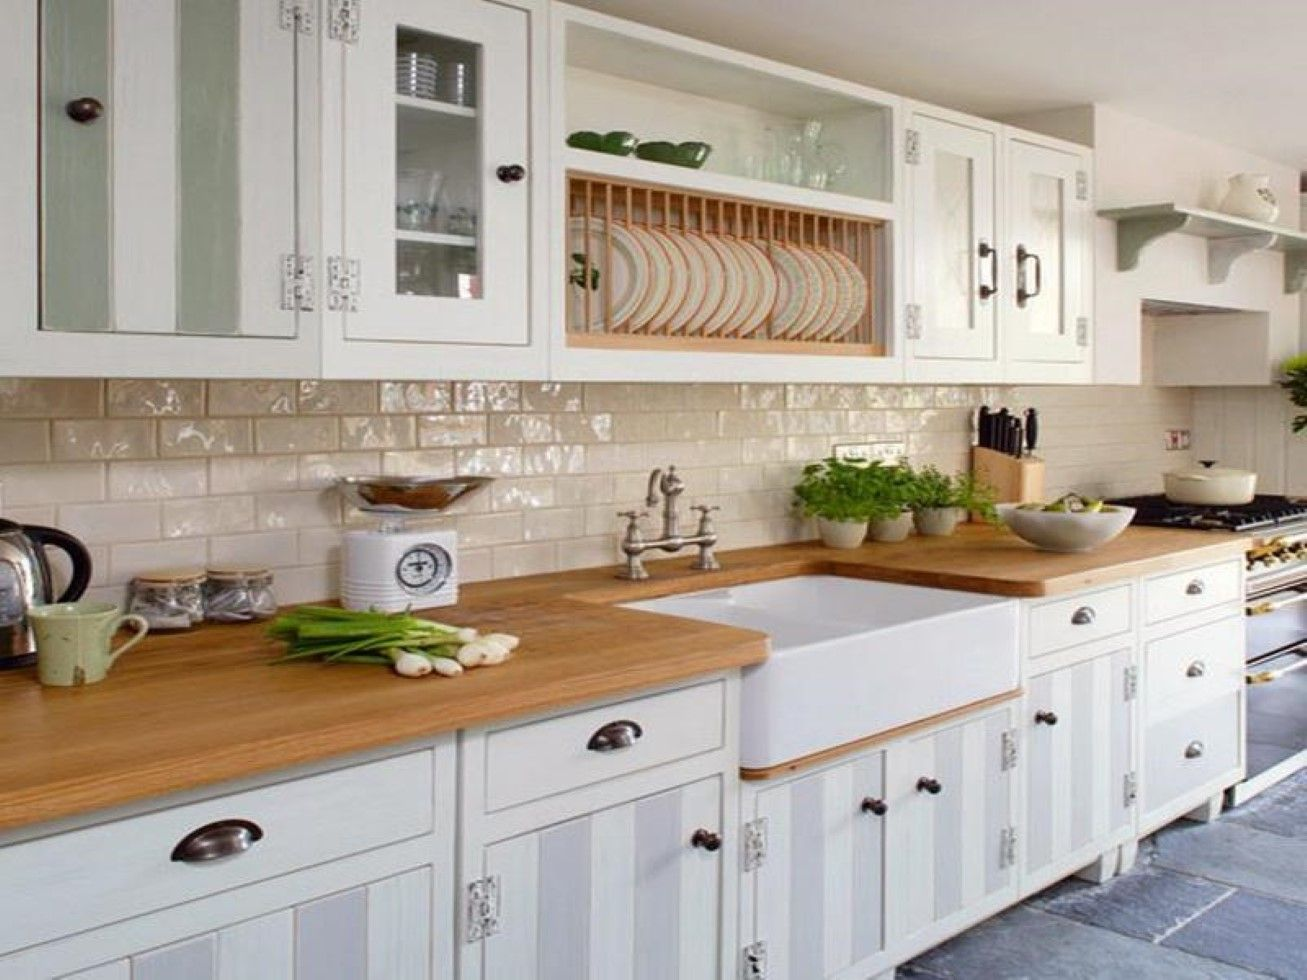 best farmhouse kitchens ideas for interiors farmhouse kitchens with old fashioned kitchen on kitchen remodel ideas id=65632